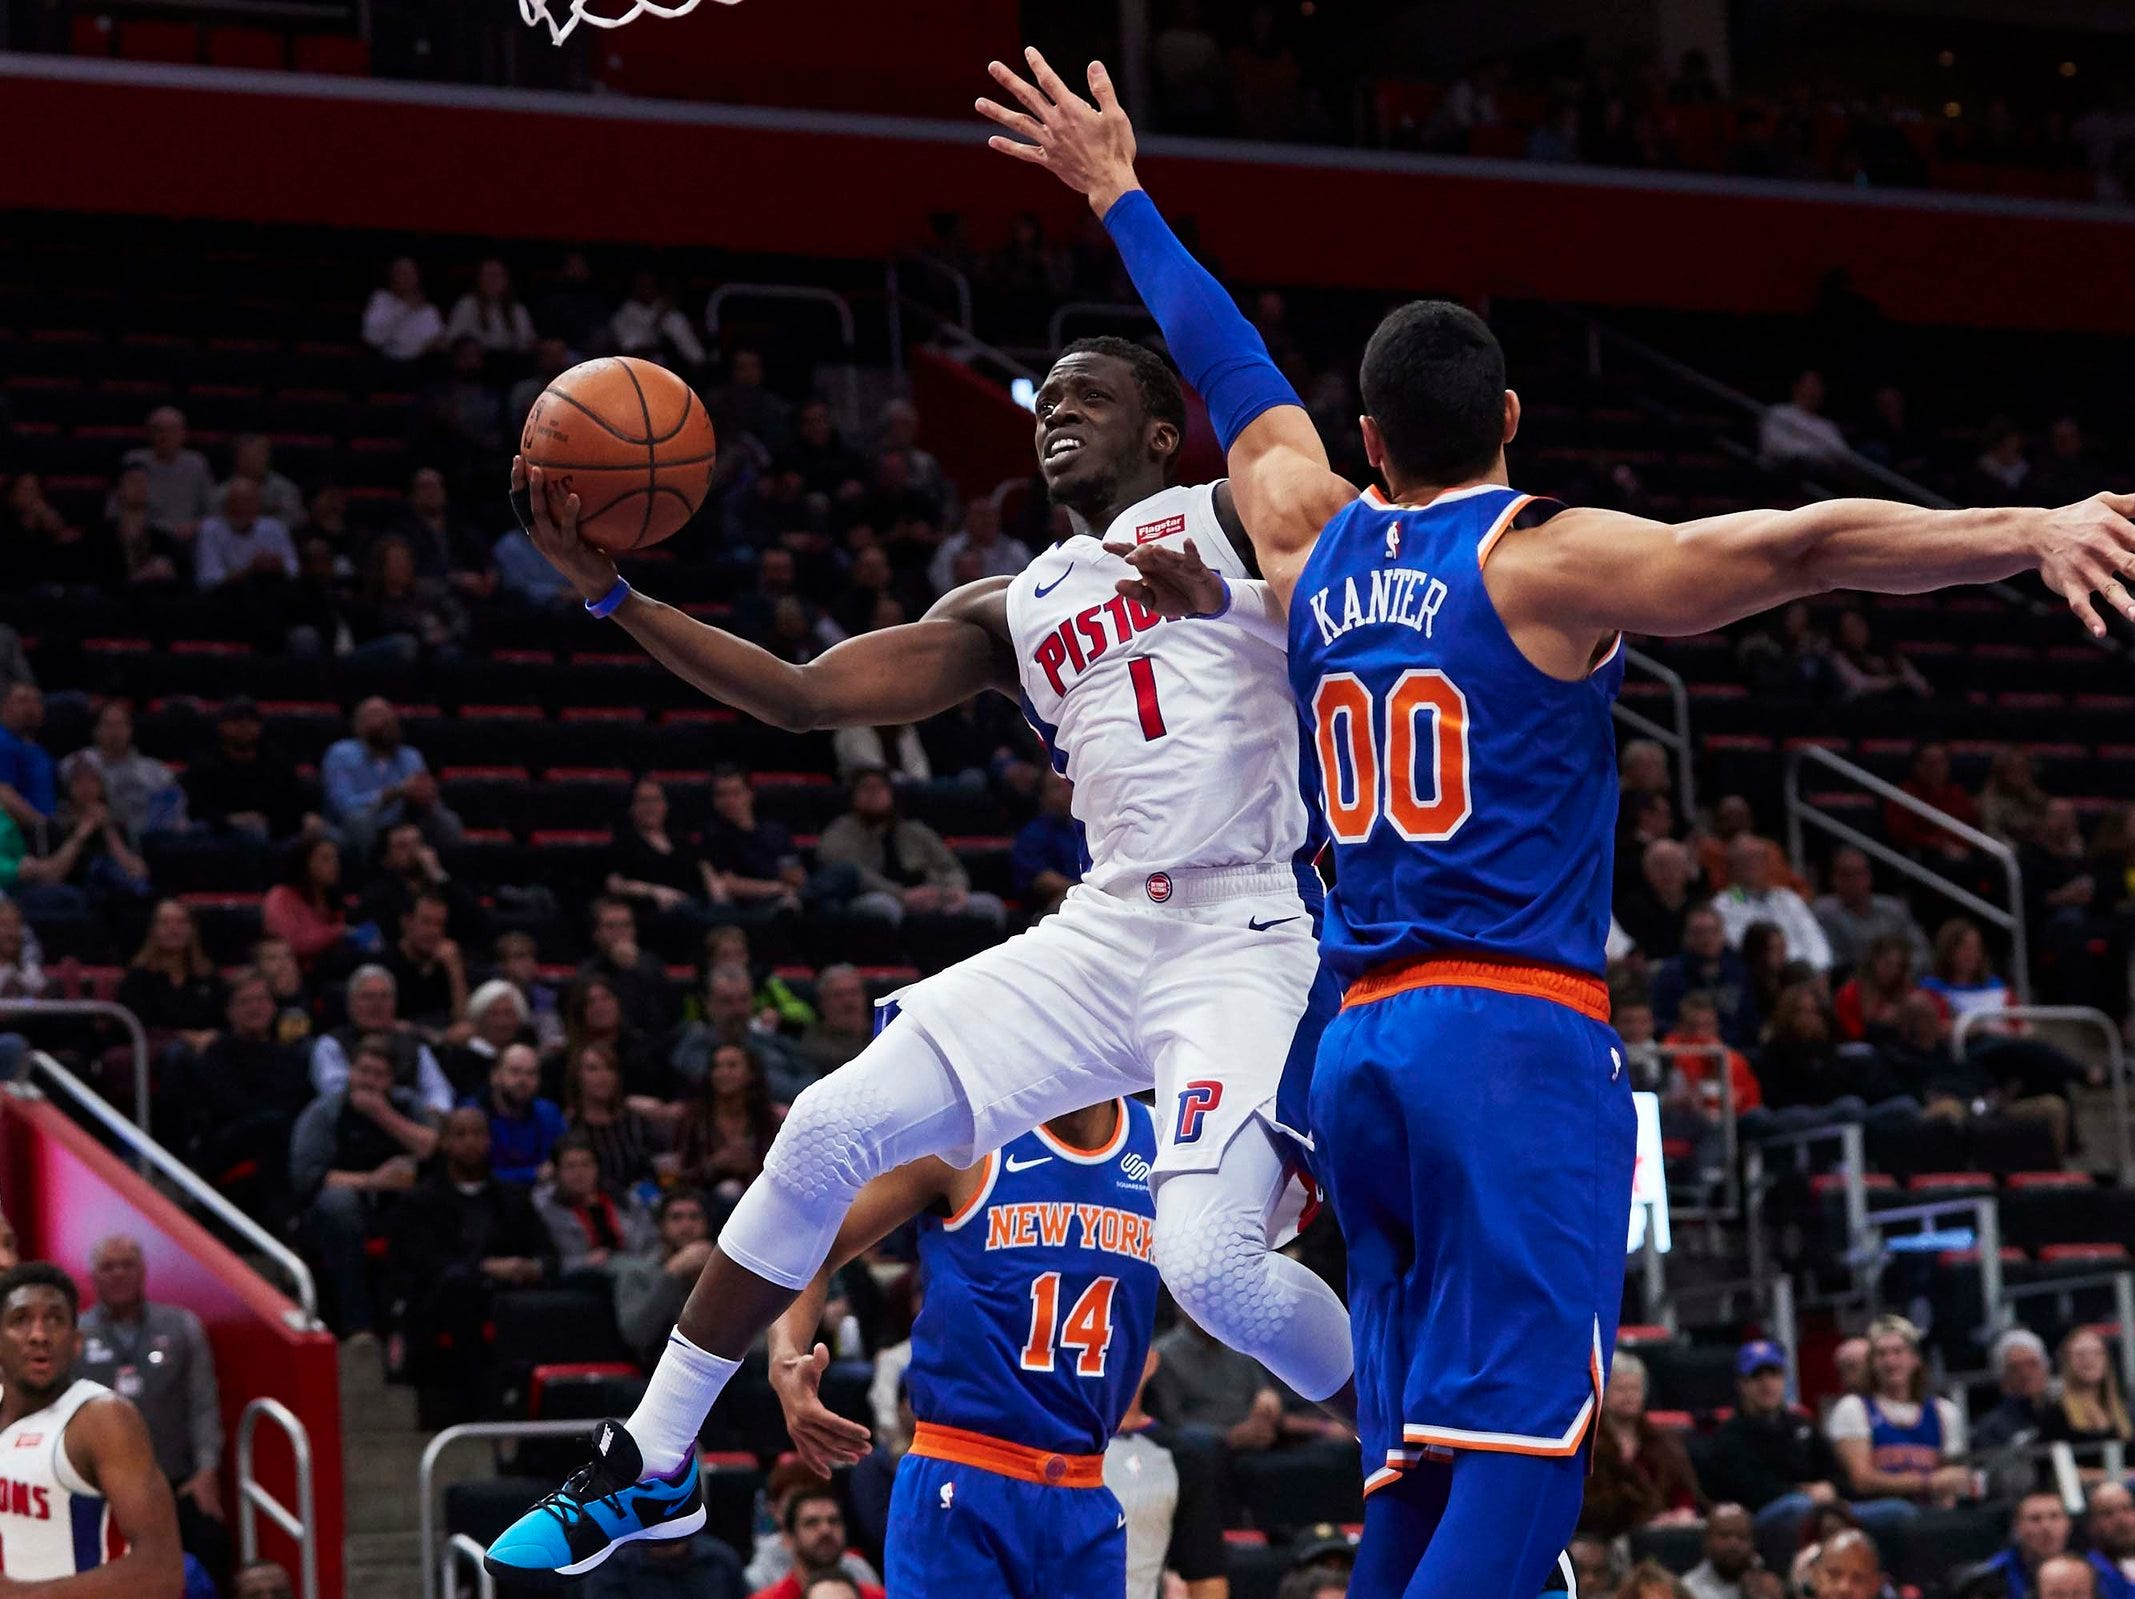 Detroit Pistons guard Reggie Jackson (1) shoots on New York Knicks center Enes Kanter (00) in the first half at Little Caesars Arena.